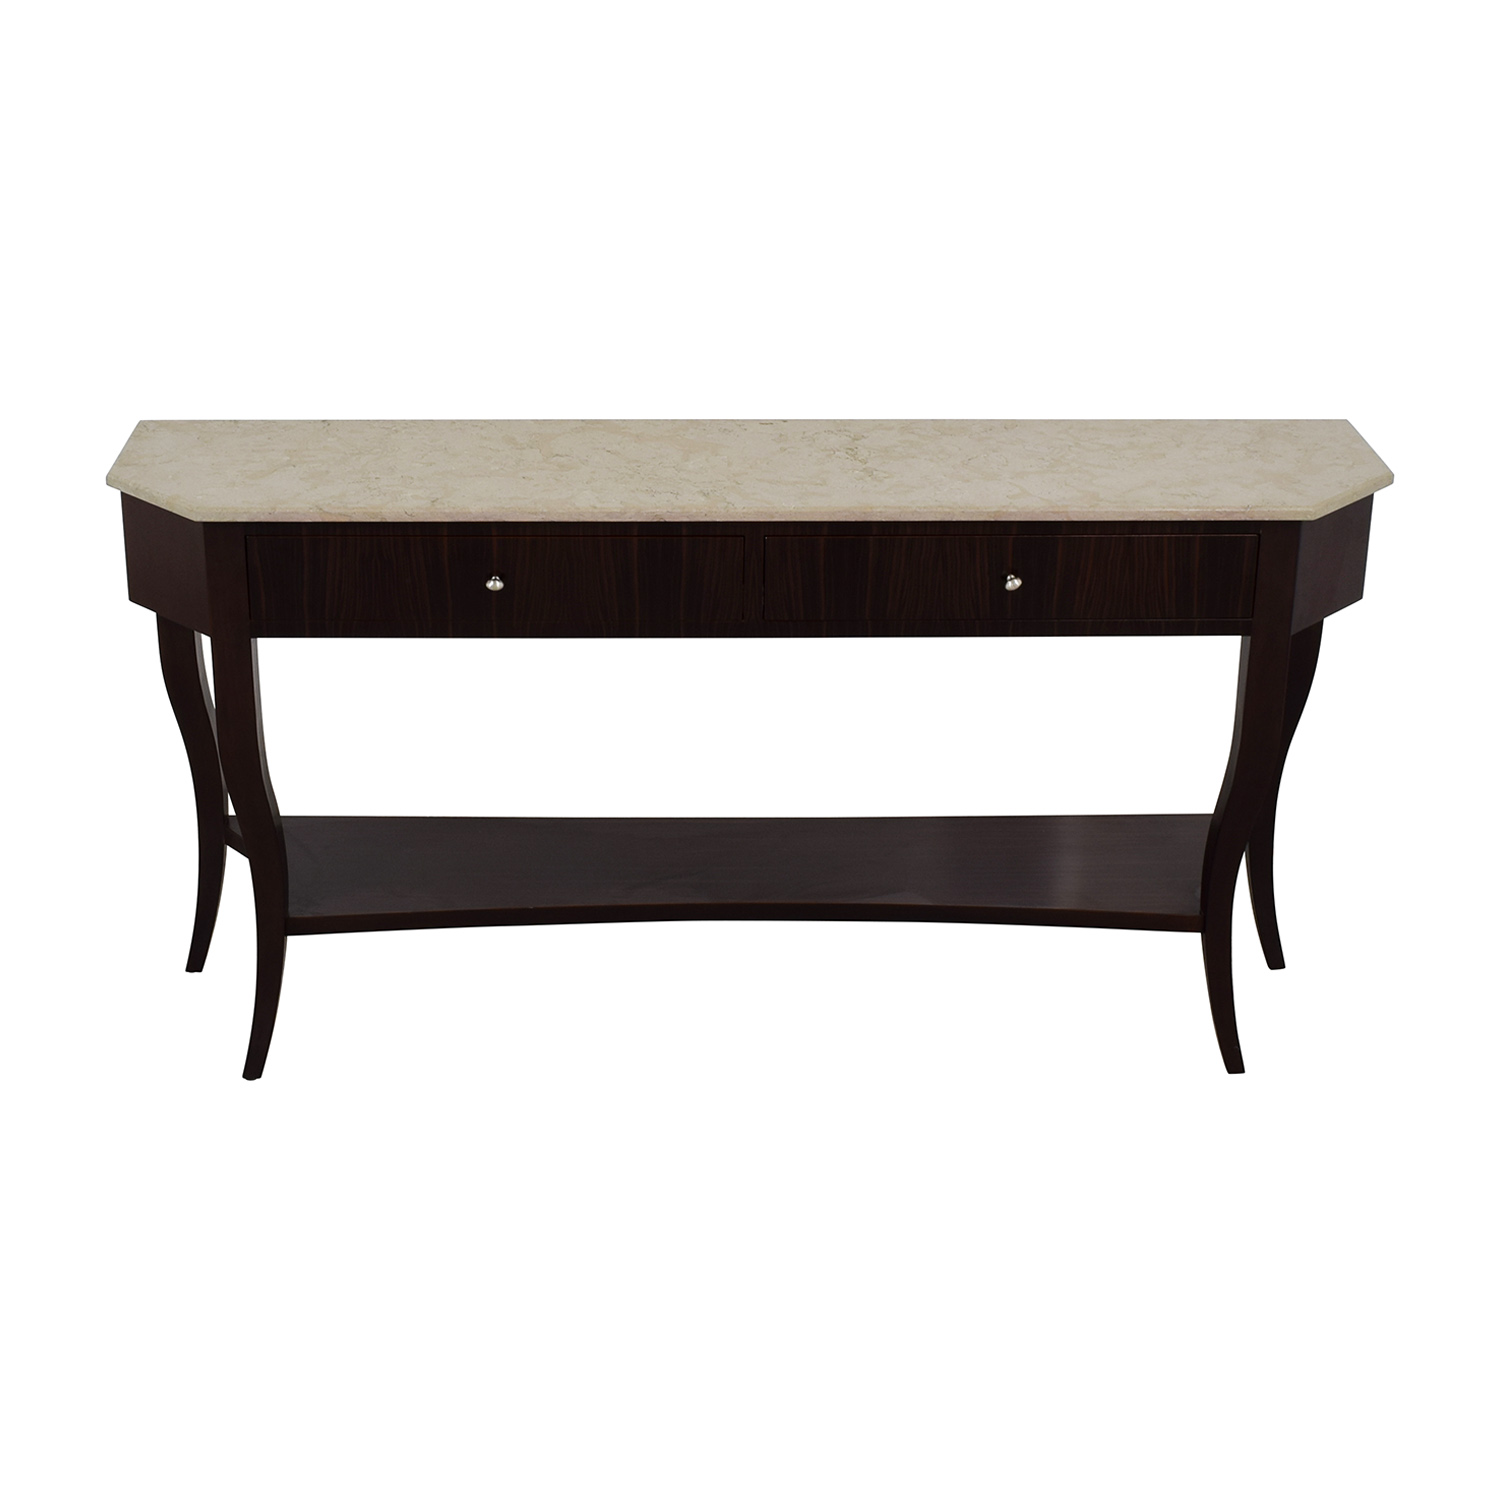 Thomas Fetherston Custom Furniture Two-Drawer Console sale